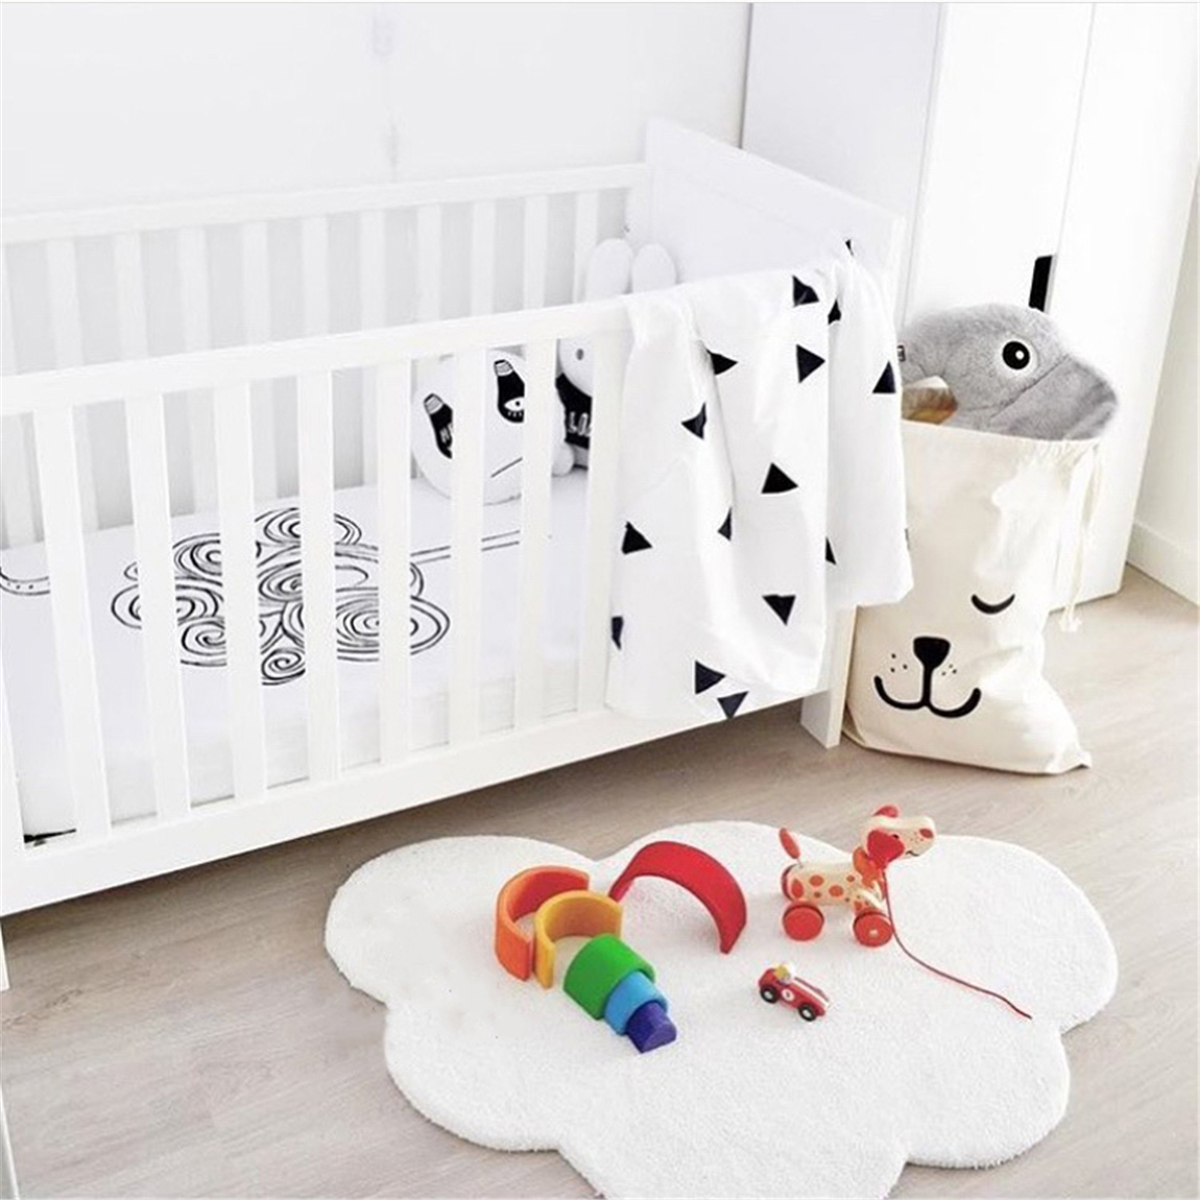 INS Nordic Style Baby Cloud Cotton Setting Mat Children's Non Slip Game Soft Pad Crawling Mat Home Decoration Photo Props